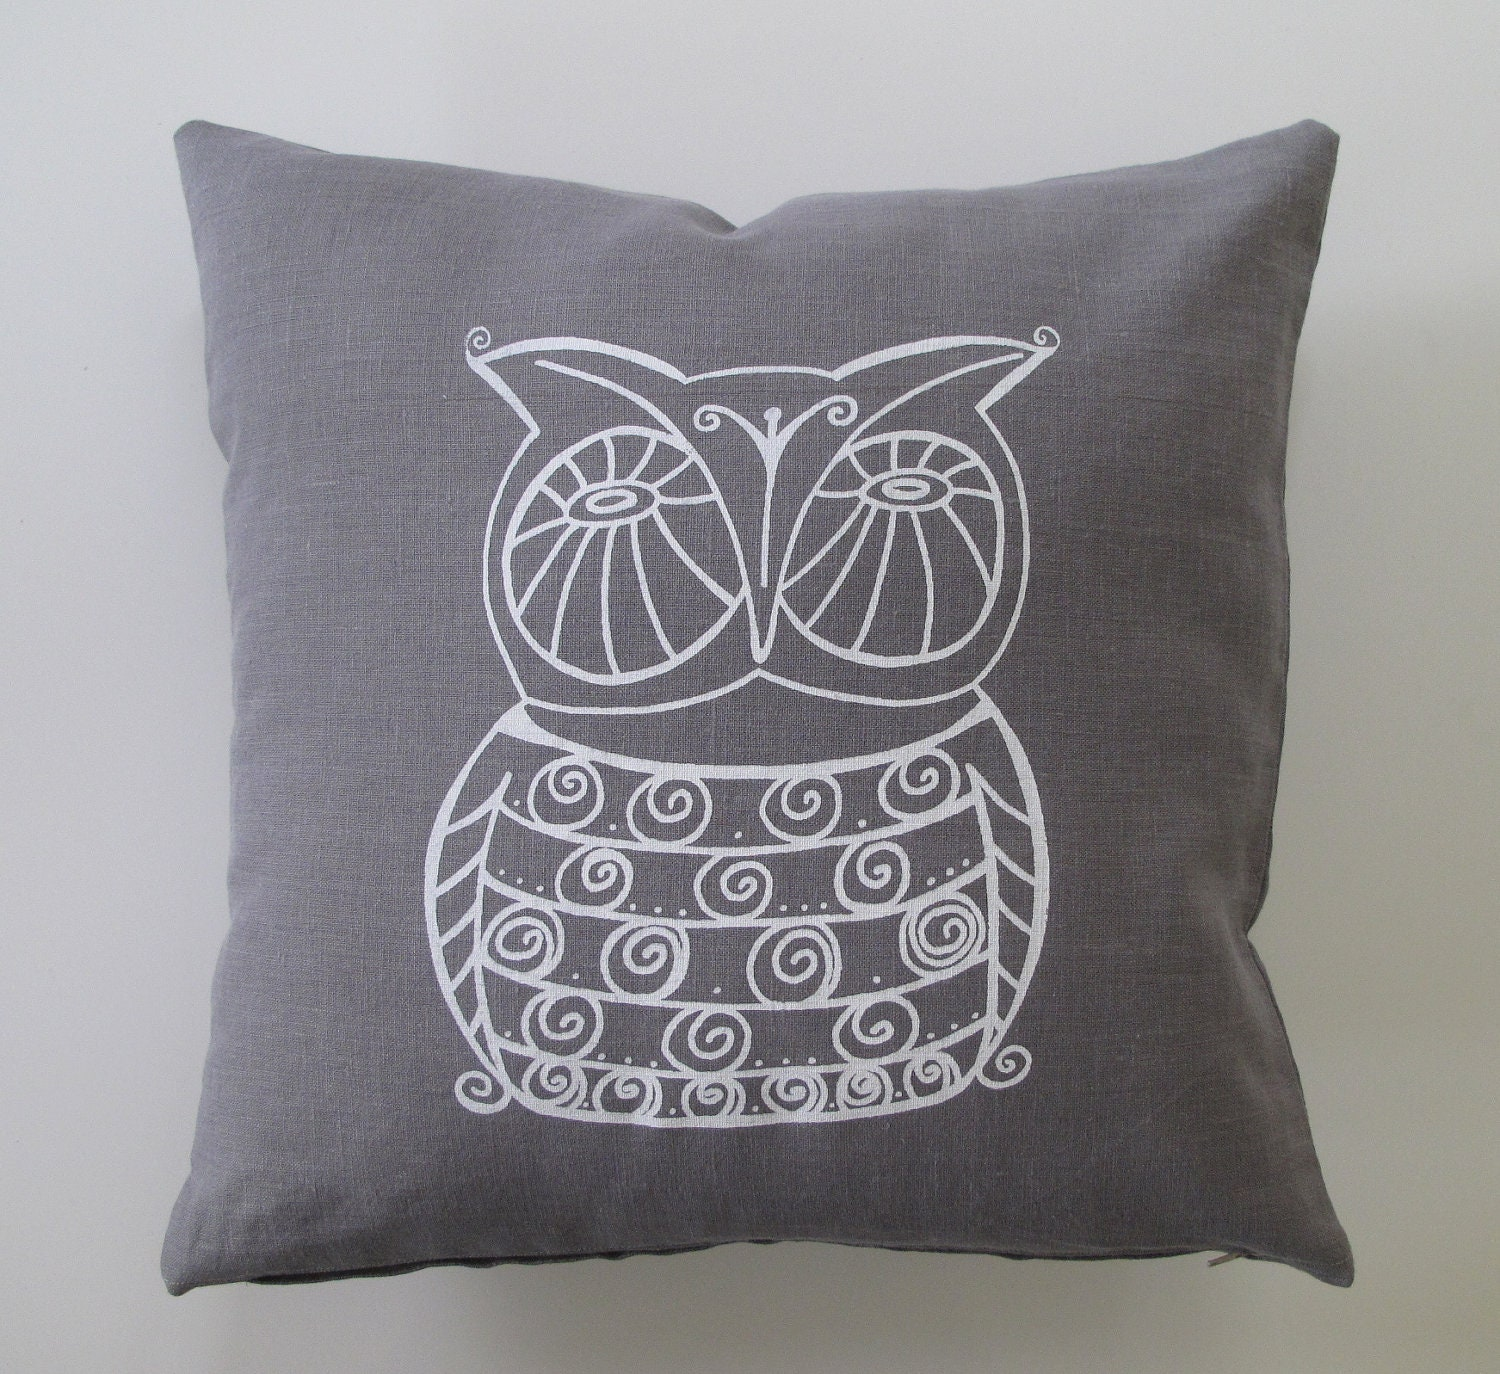 Owl Throw Pillow Covers : Owl Decorative Pillow Cover Cushion Cover 16 x 16 inches